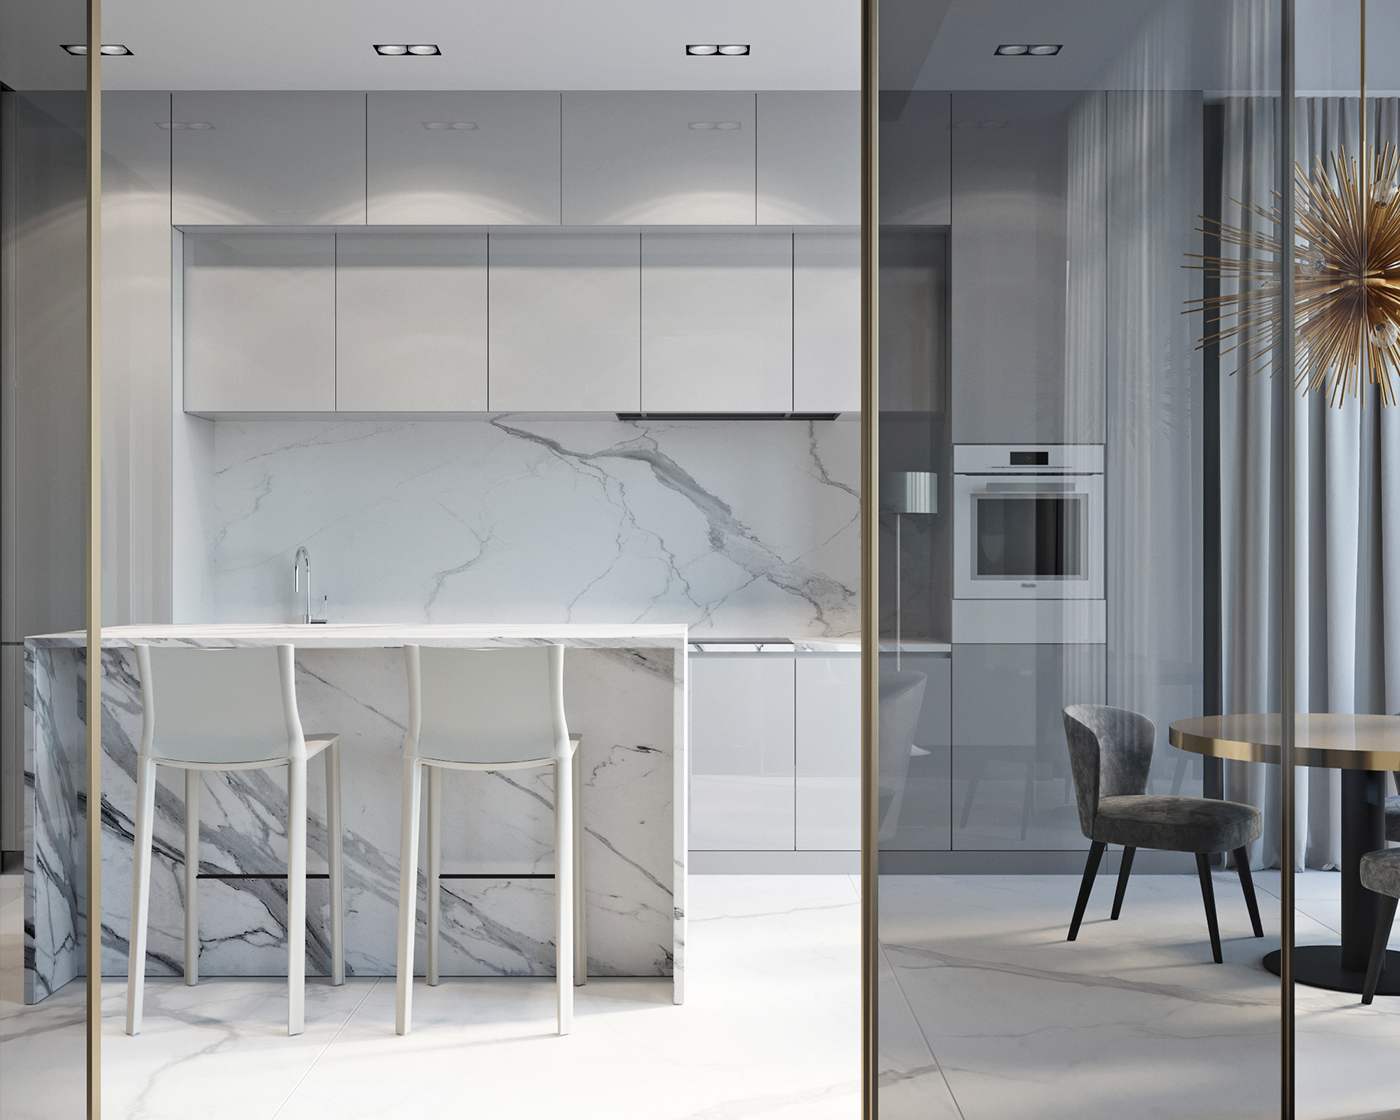 Shades Of Gray Modern Interior Design In Moscow! 3 shades of gray Shades Of Gray: Modern Interior Design In Moscow! Shades Of Gray Modern Interior Design In Moscow 3